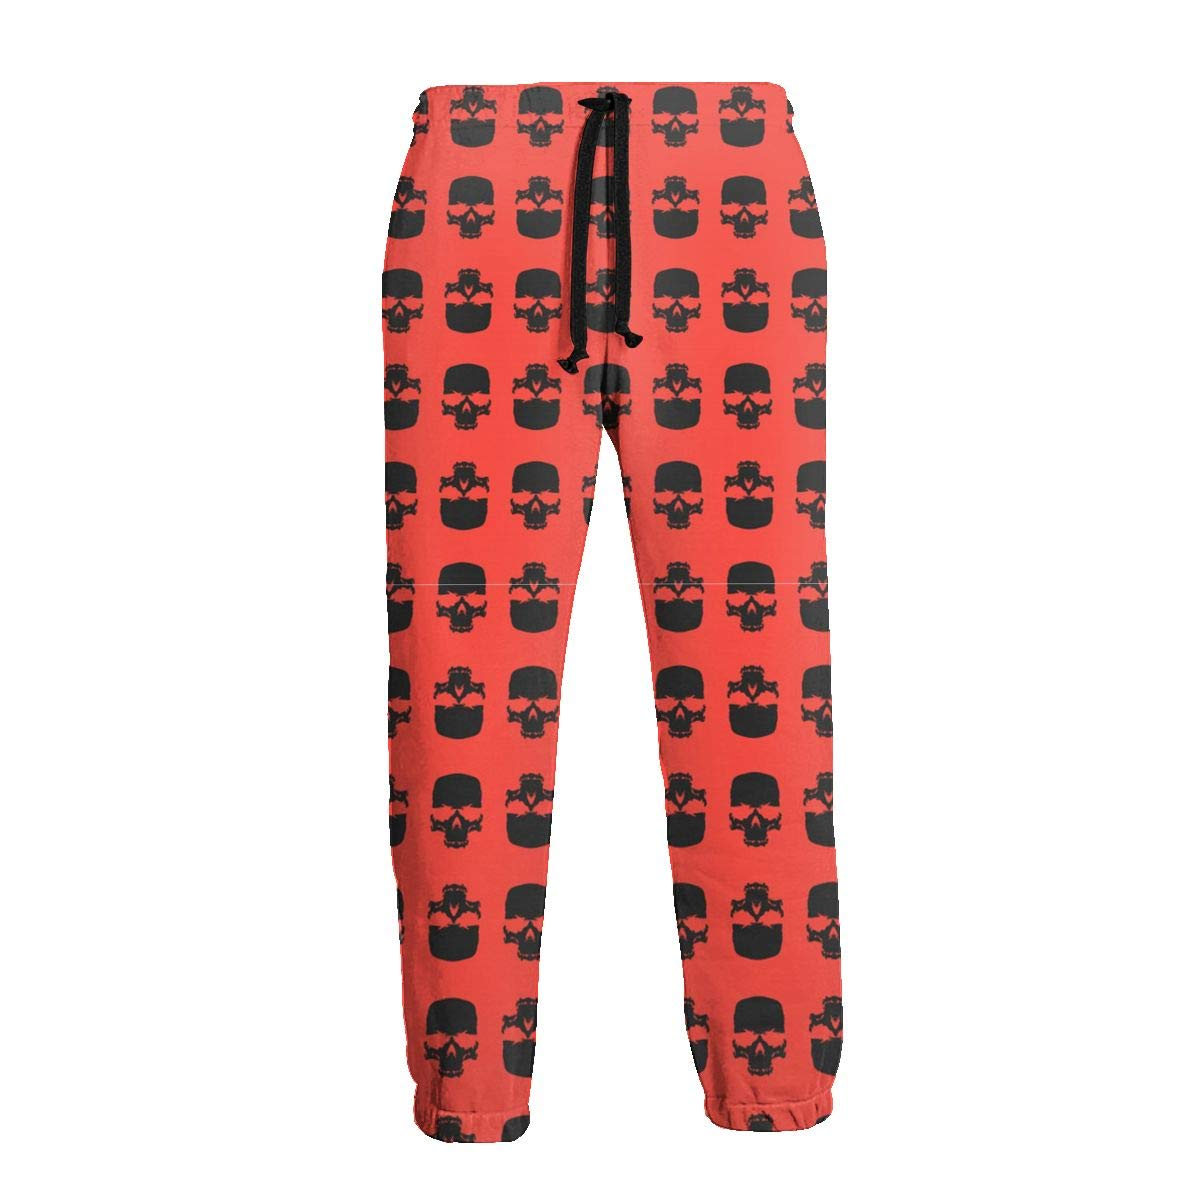 Mens Classic Fit Jogger Sport Pants Skull Sweatpants with Size S-3XL